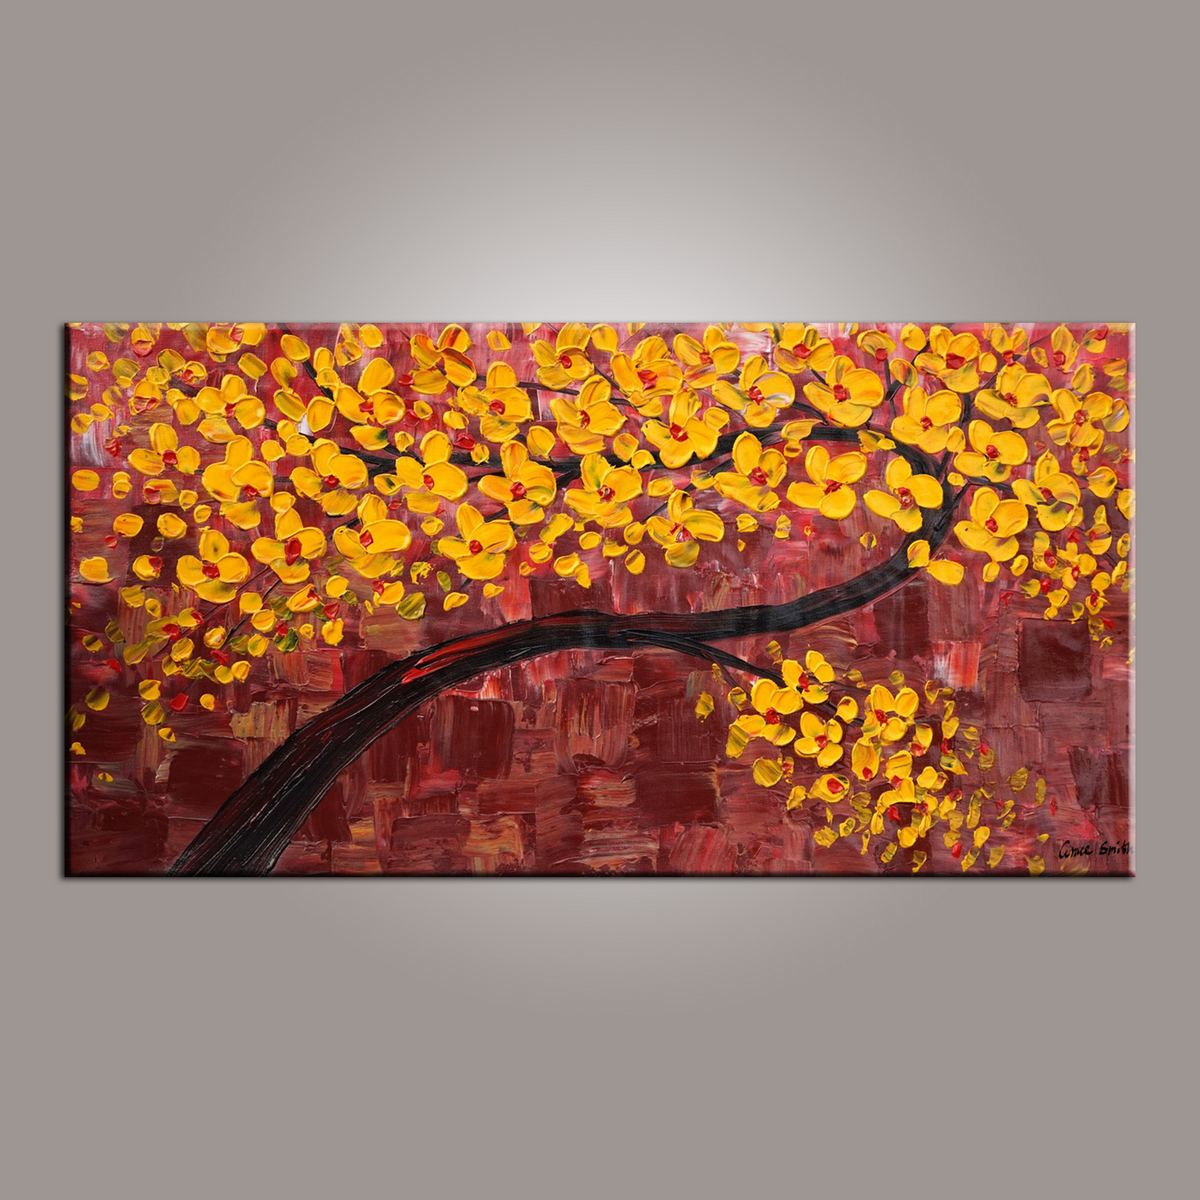 Painting on Sale, Canvas Art, Flower Tree Painting, Abstract Art Painting, Dining Room Wall Art, Art on Canvas, Modern Art, Contemporary Art